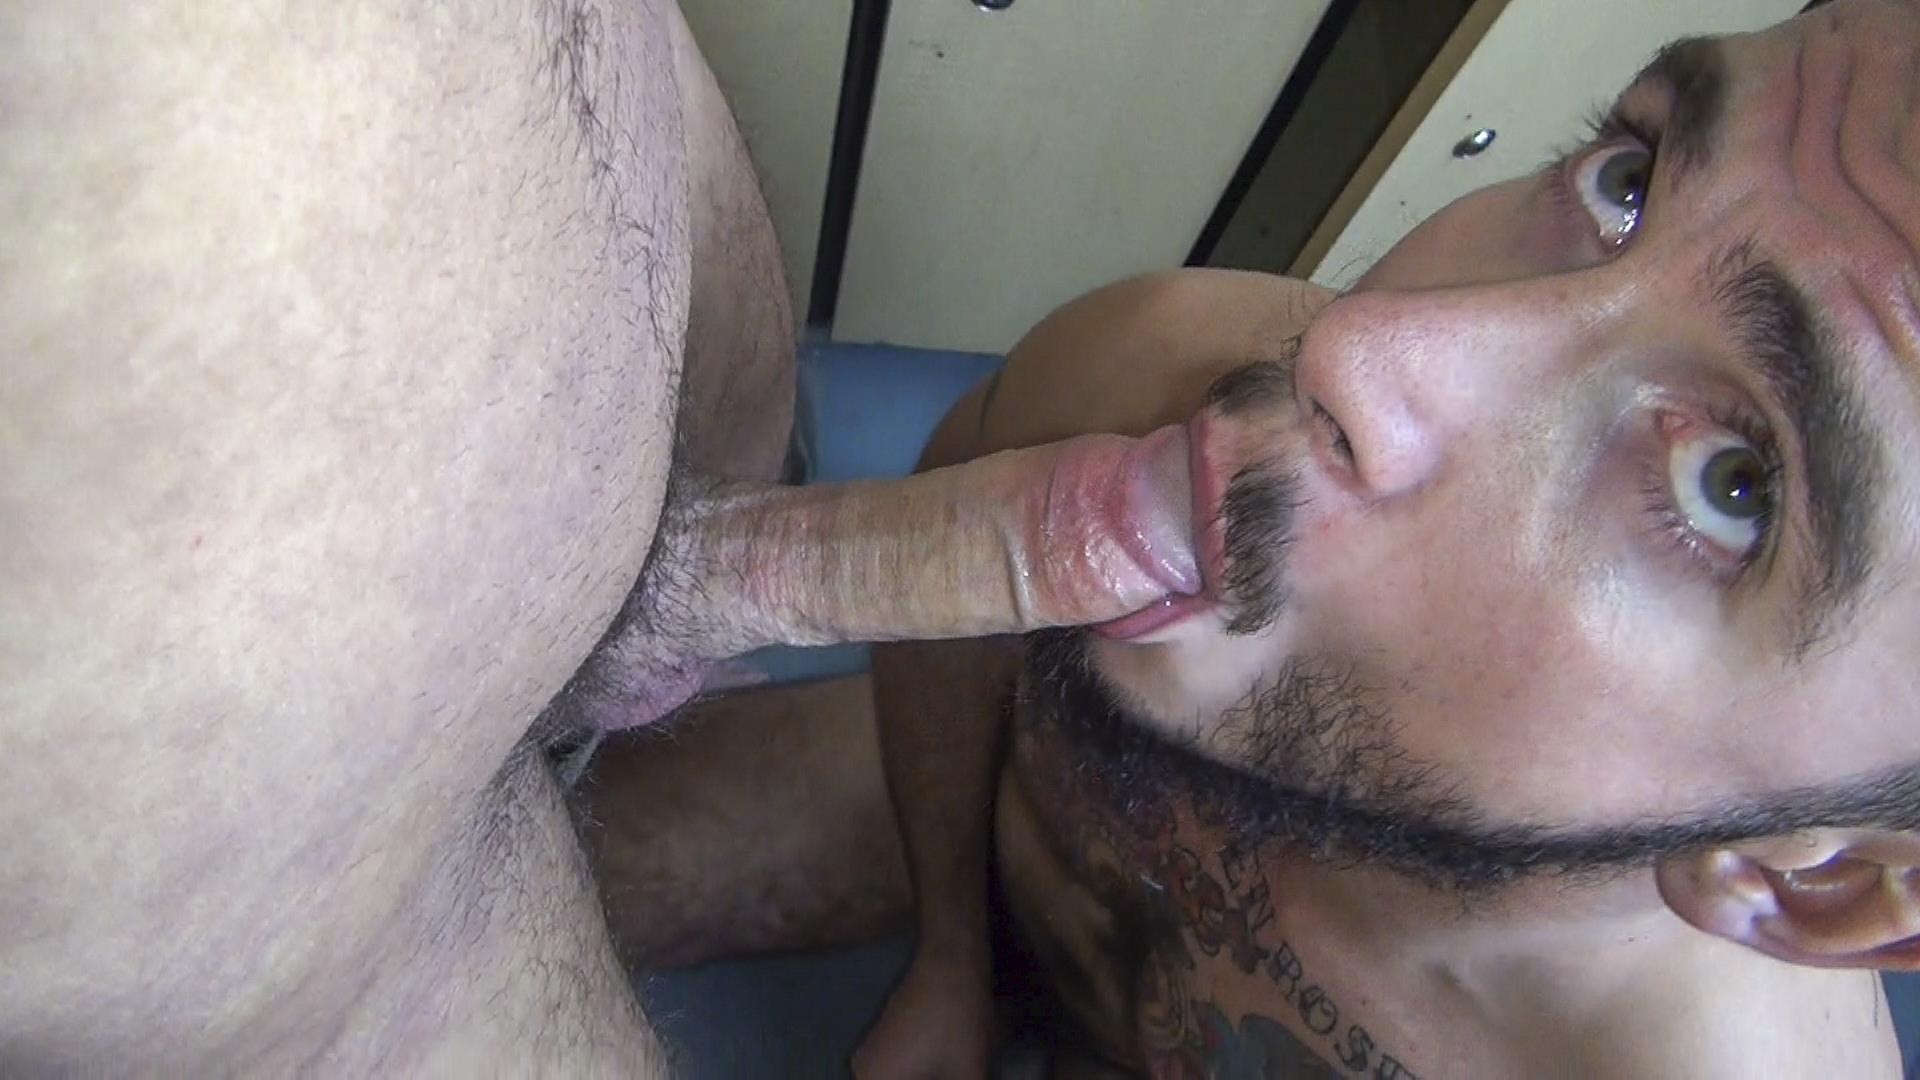 Raw-Fuck-Club-Gio-Ryder-and-Cam-Christou-Hairy-Guys-Bareback-Sex-Amateur-Gay-Porn-07 Cam Christou Breeds Gio Ryder's Hairy Ass With His Hairy Cock